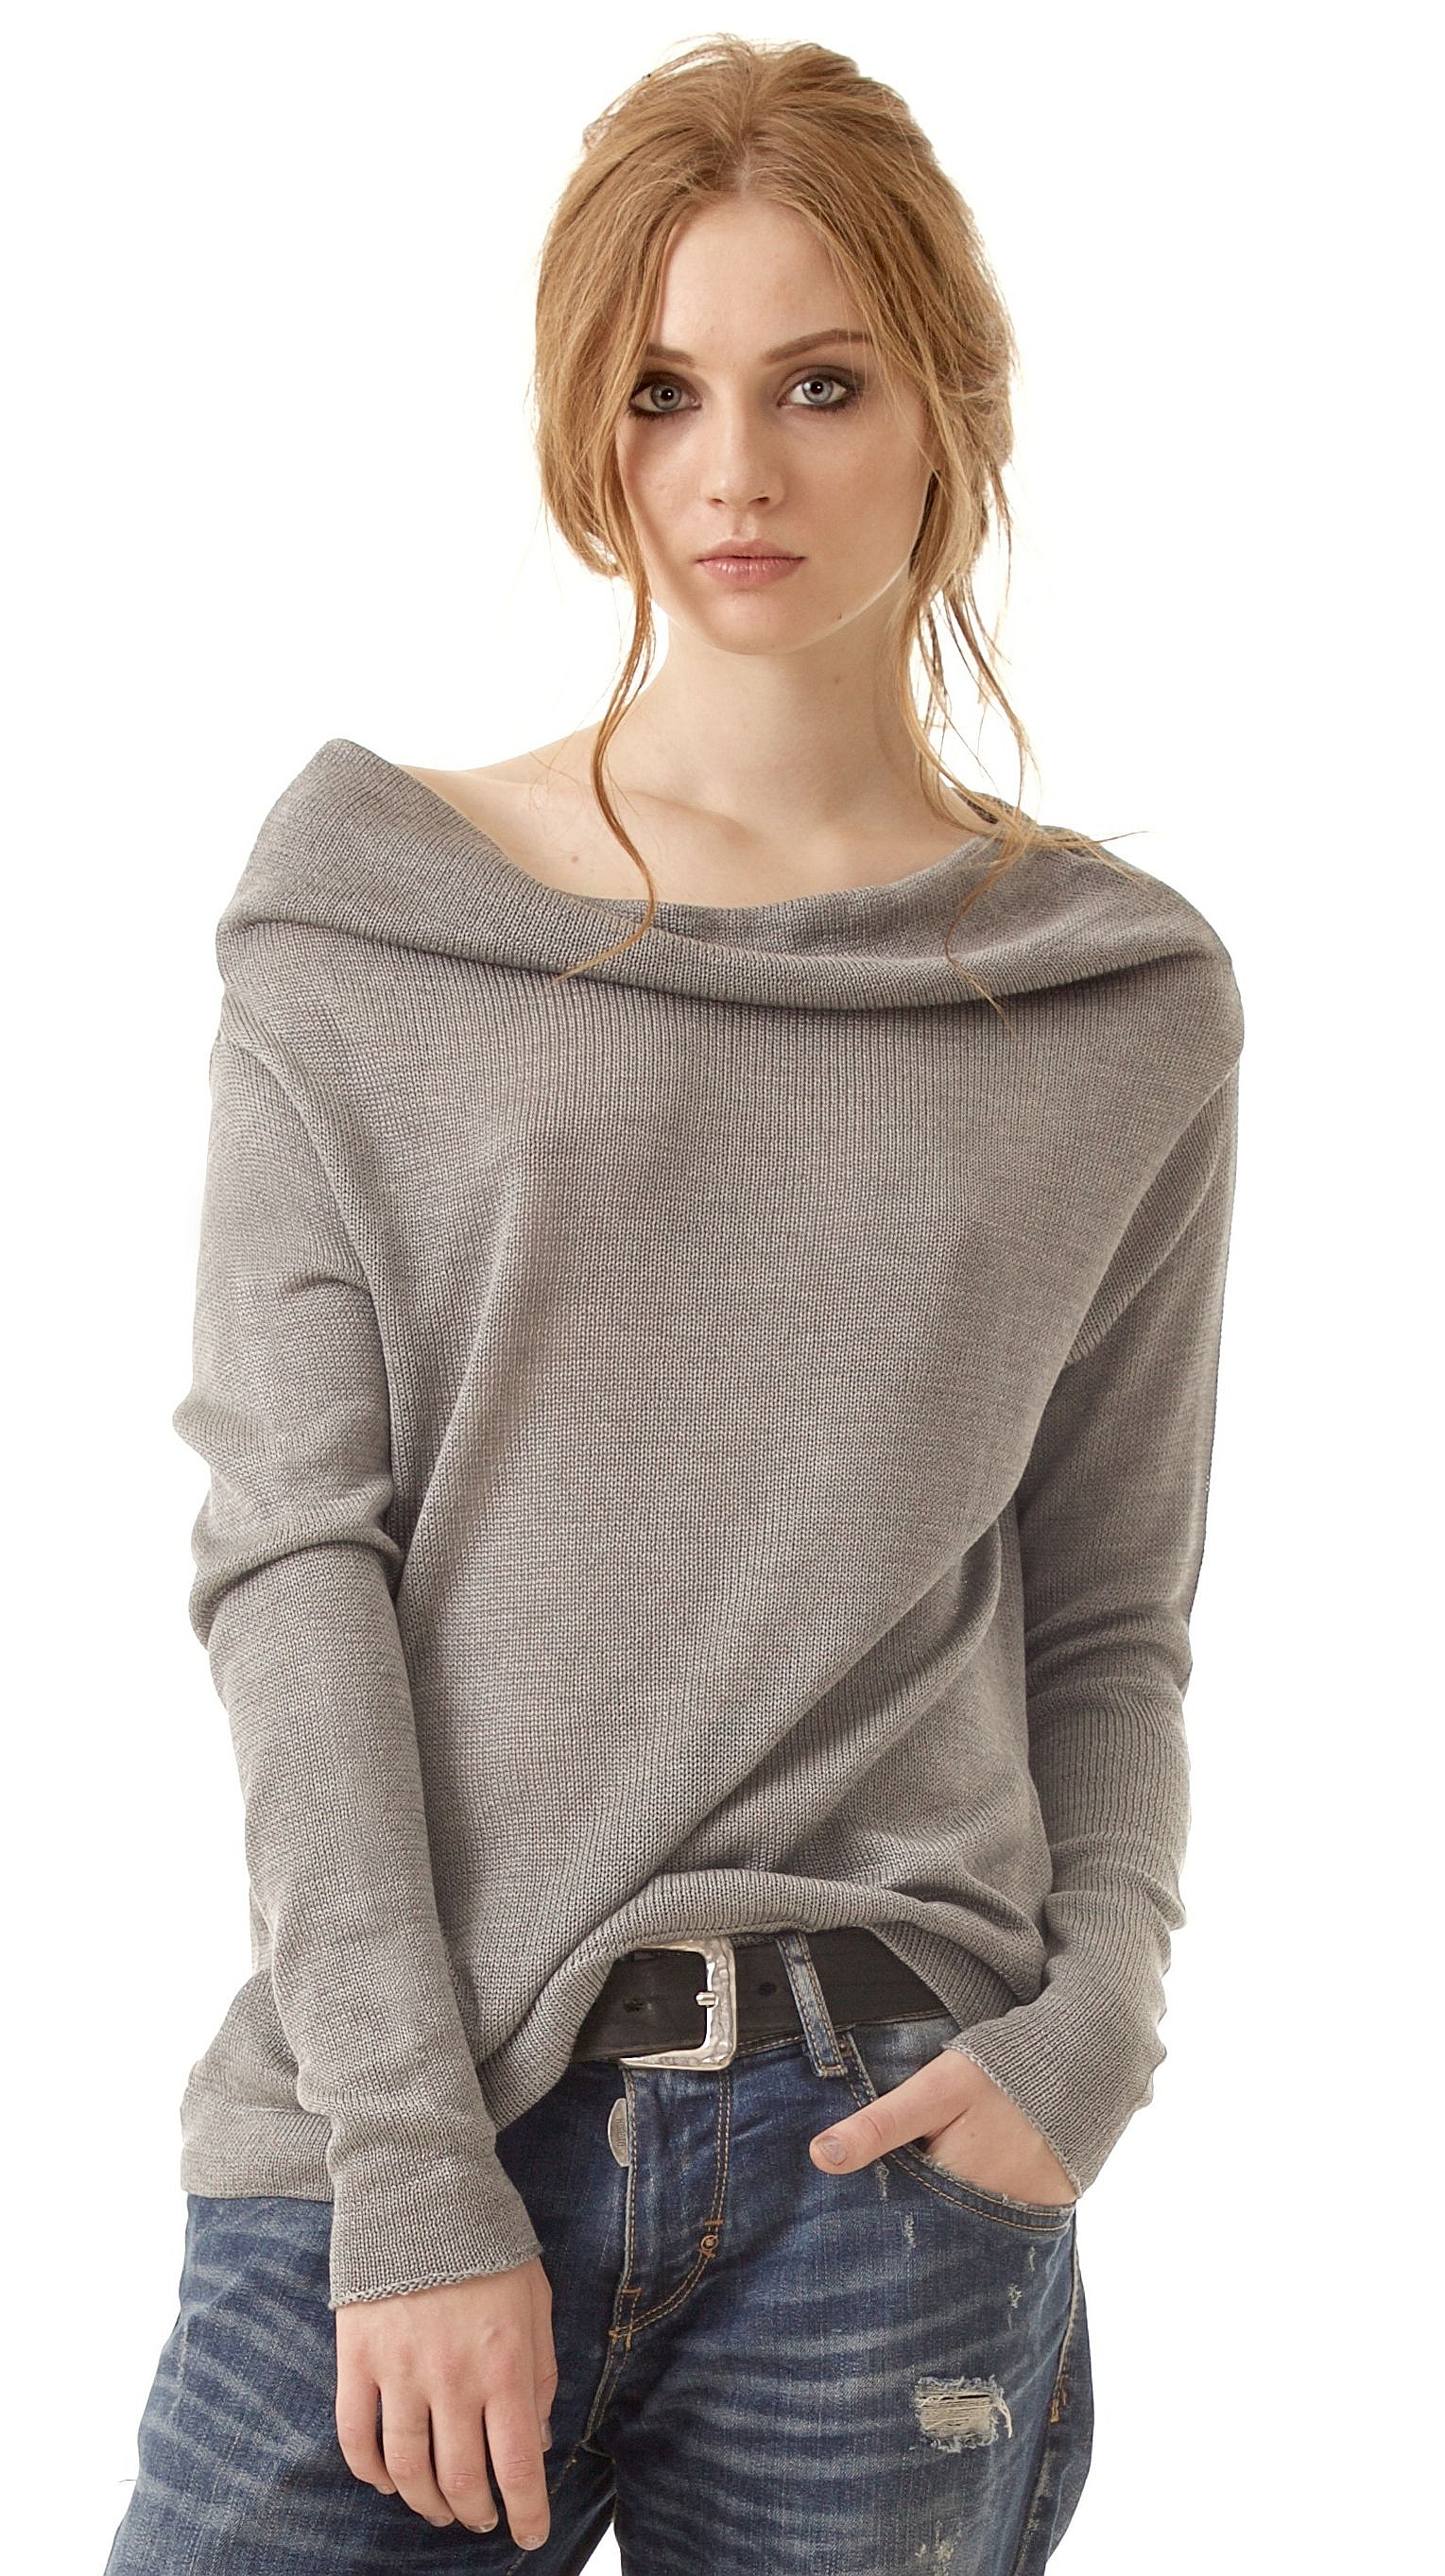 52a84213d4f Grey cashmere womens off shoulder sweater pullover AGNES